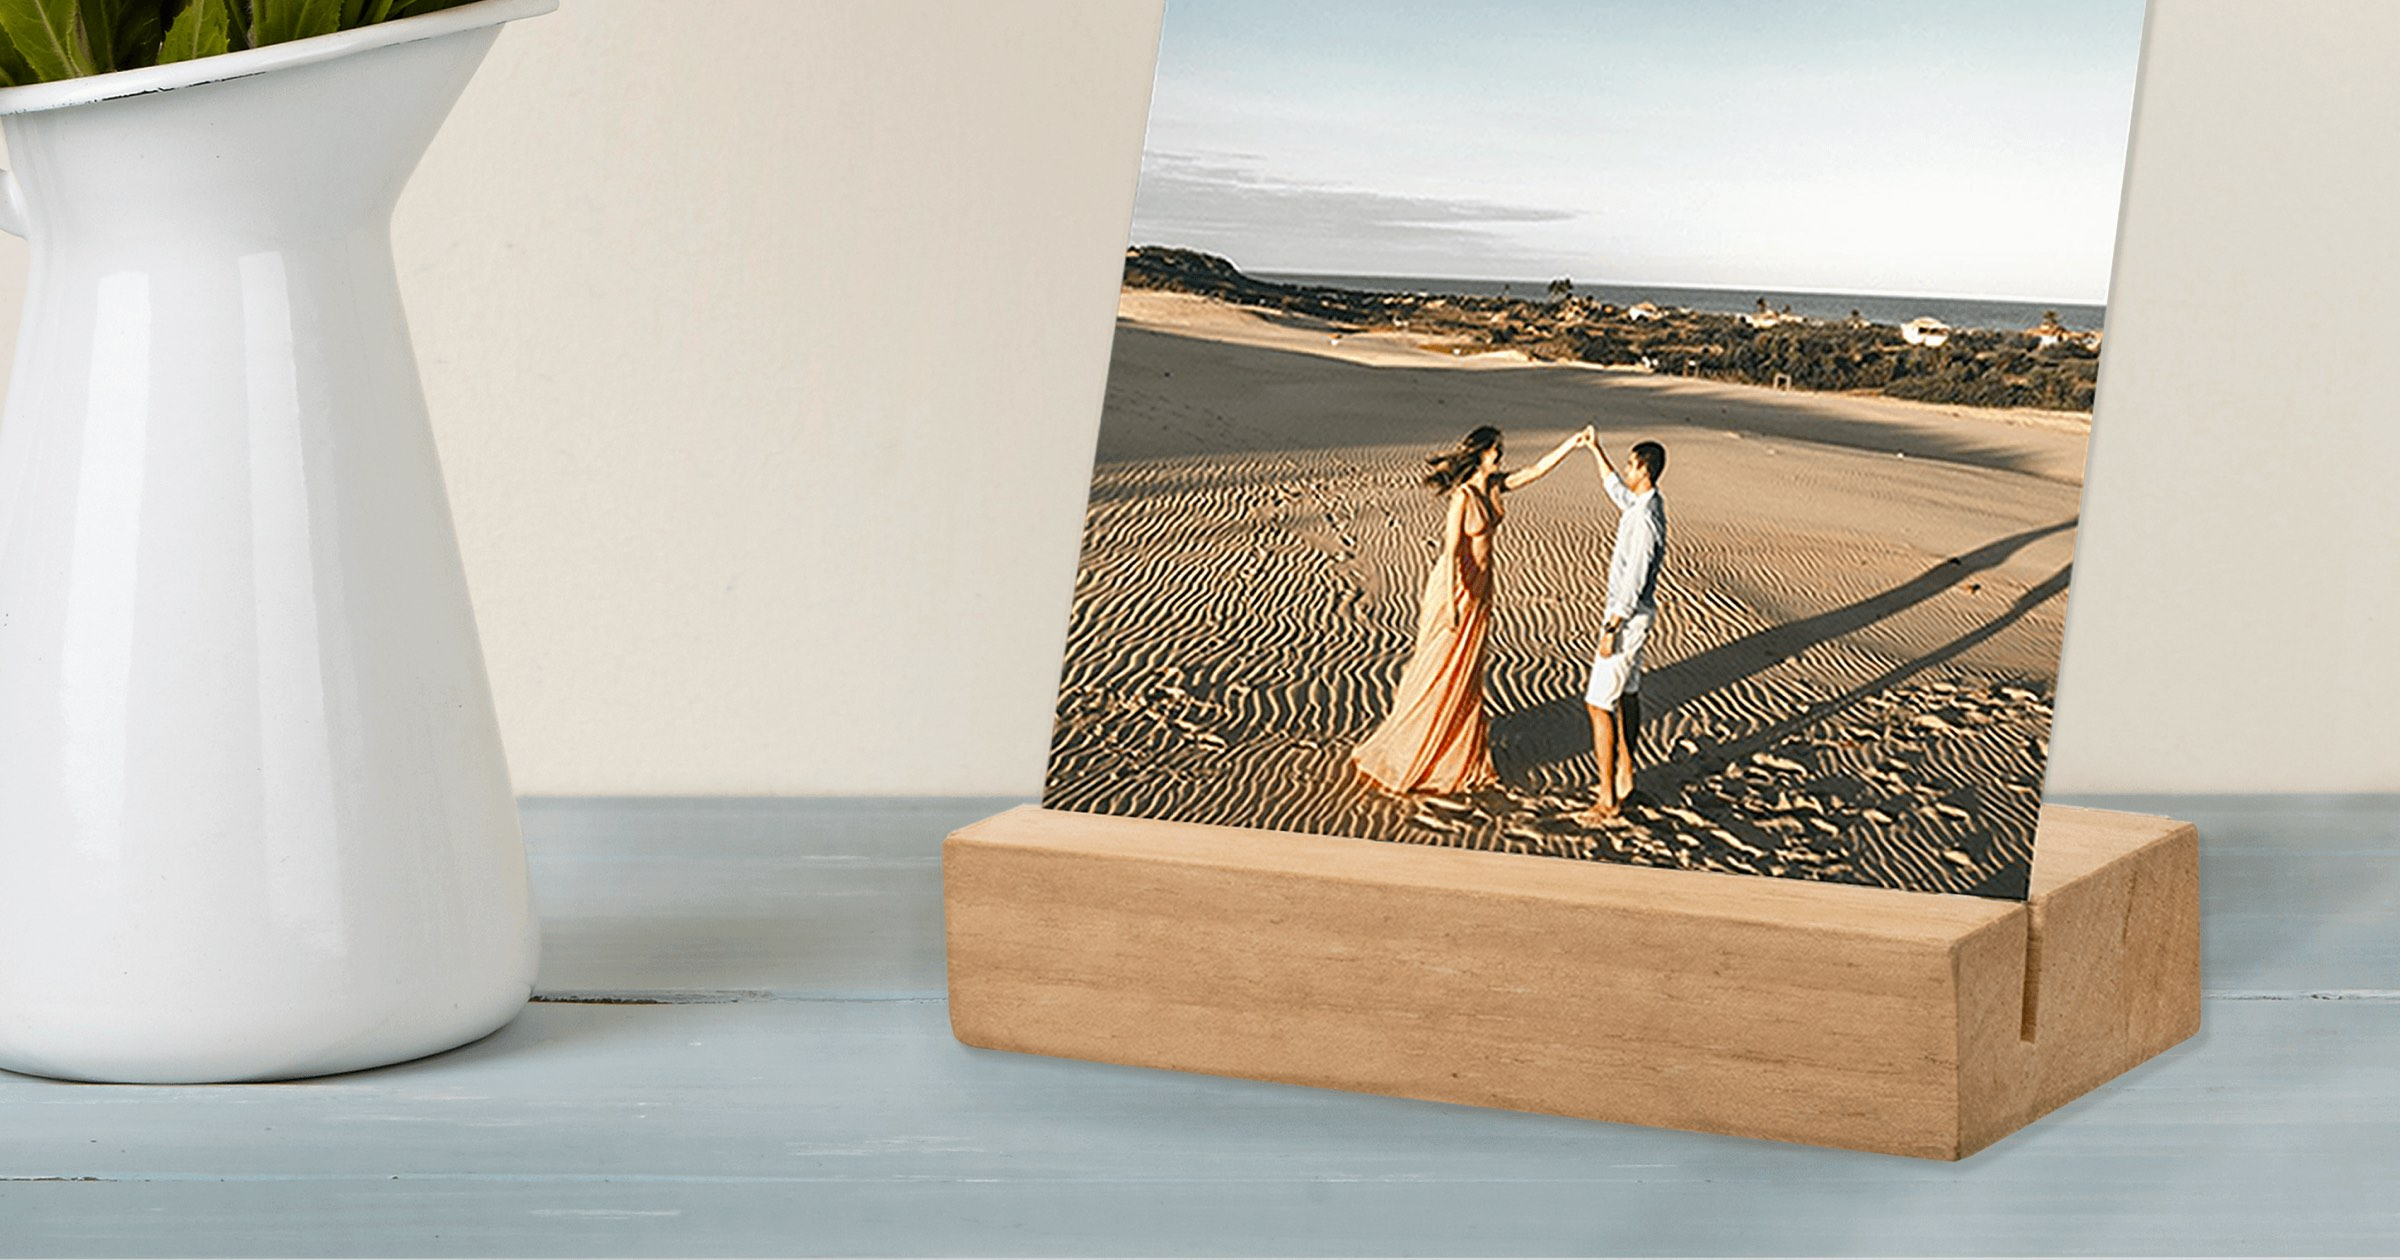 Mimeo Photos Introduces Tabletop Decor, Limited Edition Photo Ornaments